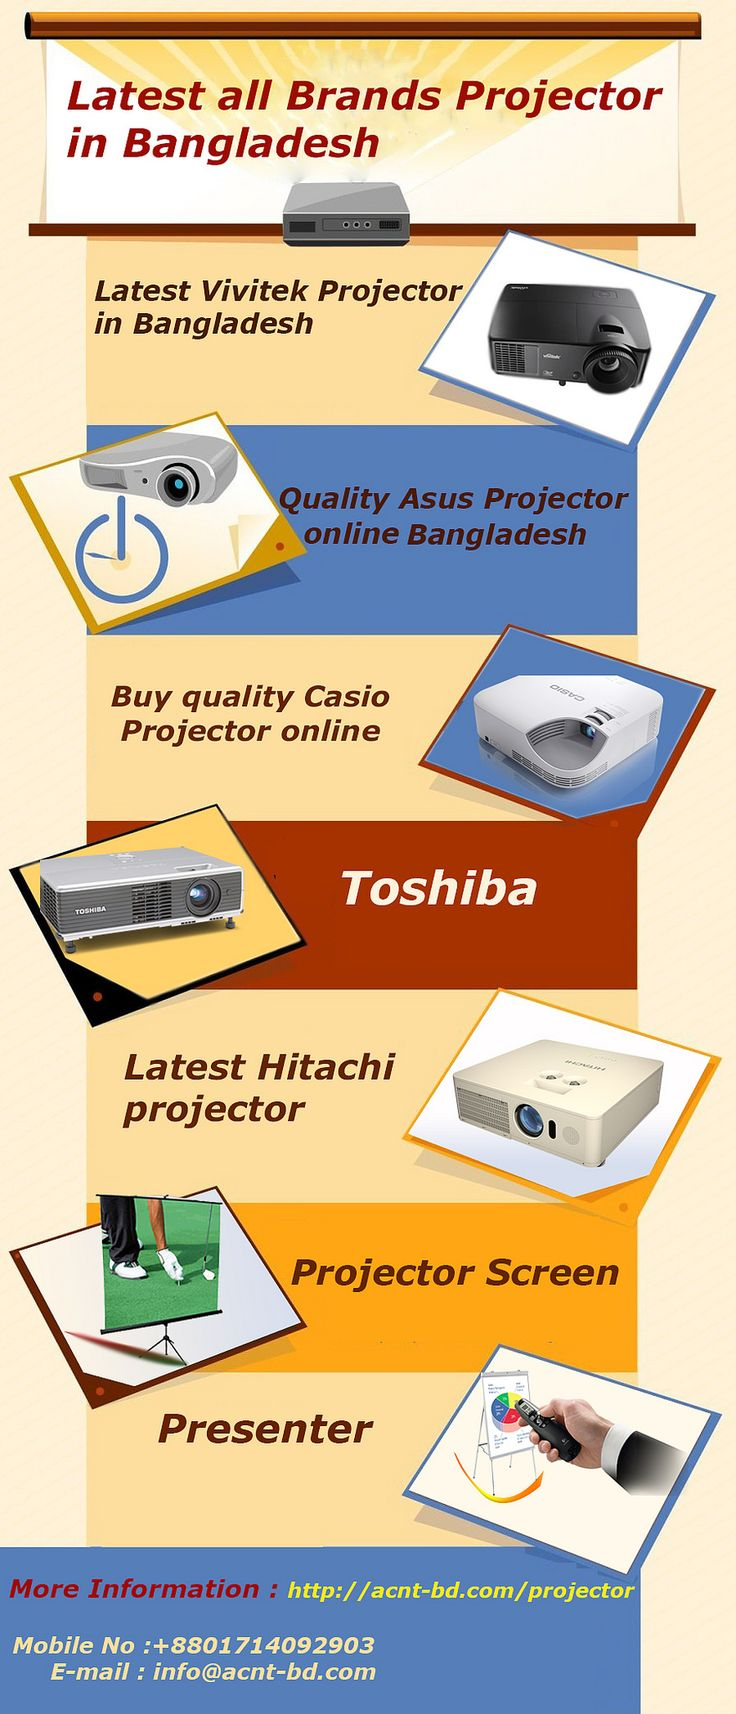 https://flic.kr/p/TkqinG   Latest all Brands Projector Price in Bangladesh   Acnt-bd.com is providing latest all brands projector price in Bangladesh, offering Asus, Casio, Benq, Toshiba, Hitachi, Projector Screen price in Bangladesh